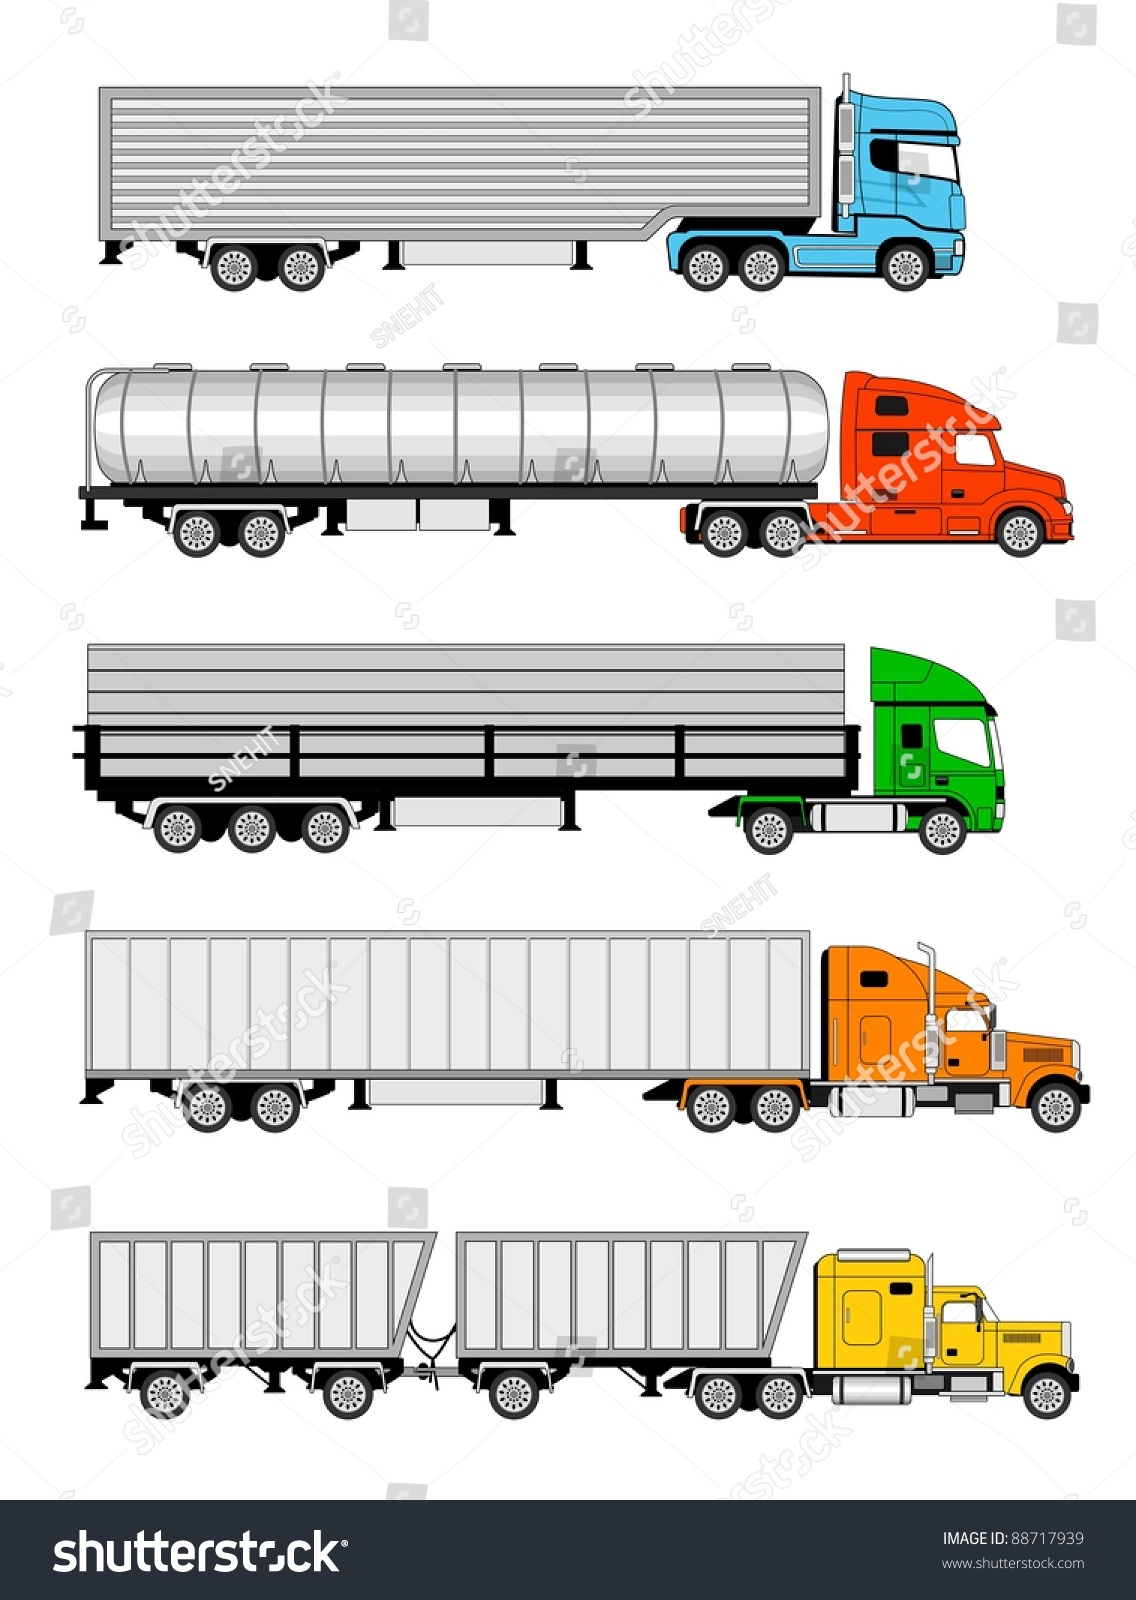 Types Of Tractor Trailers : Vector illustration of different types larges trucks